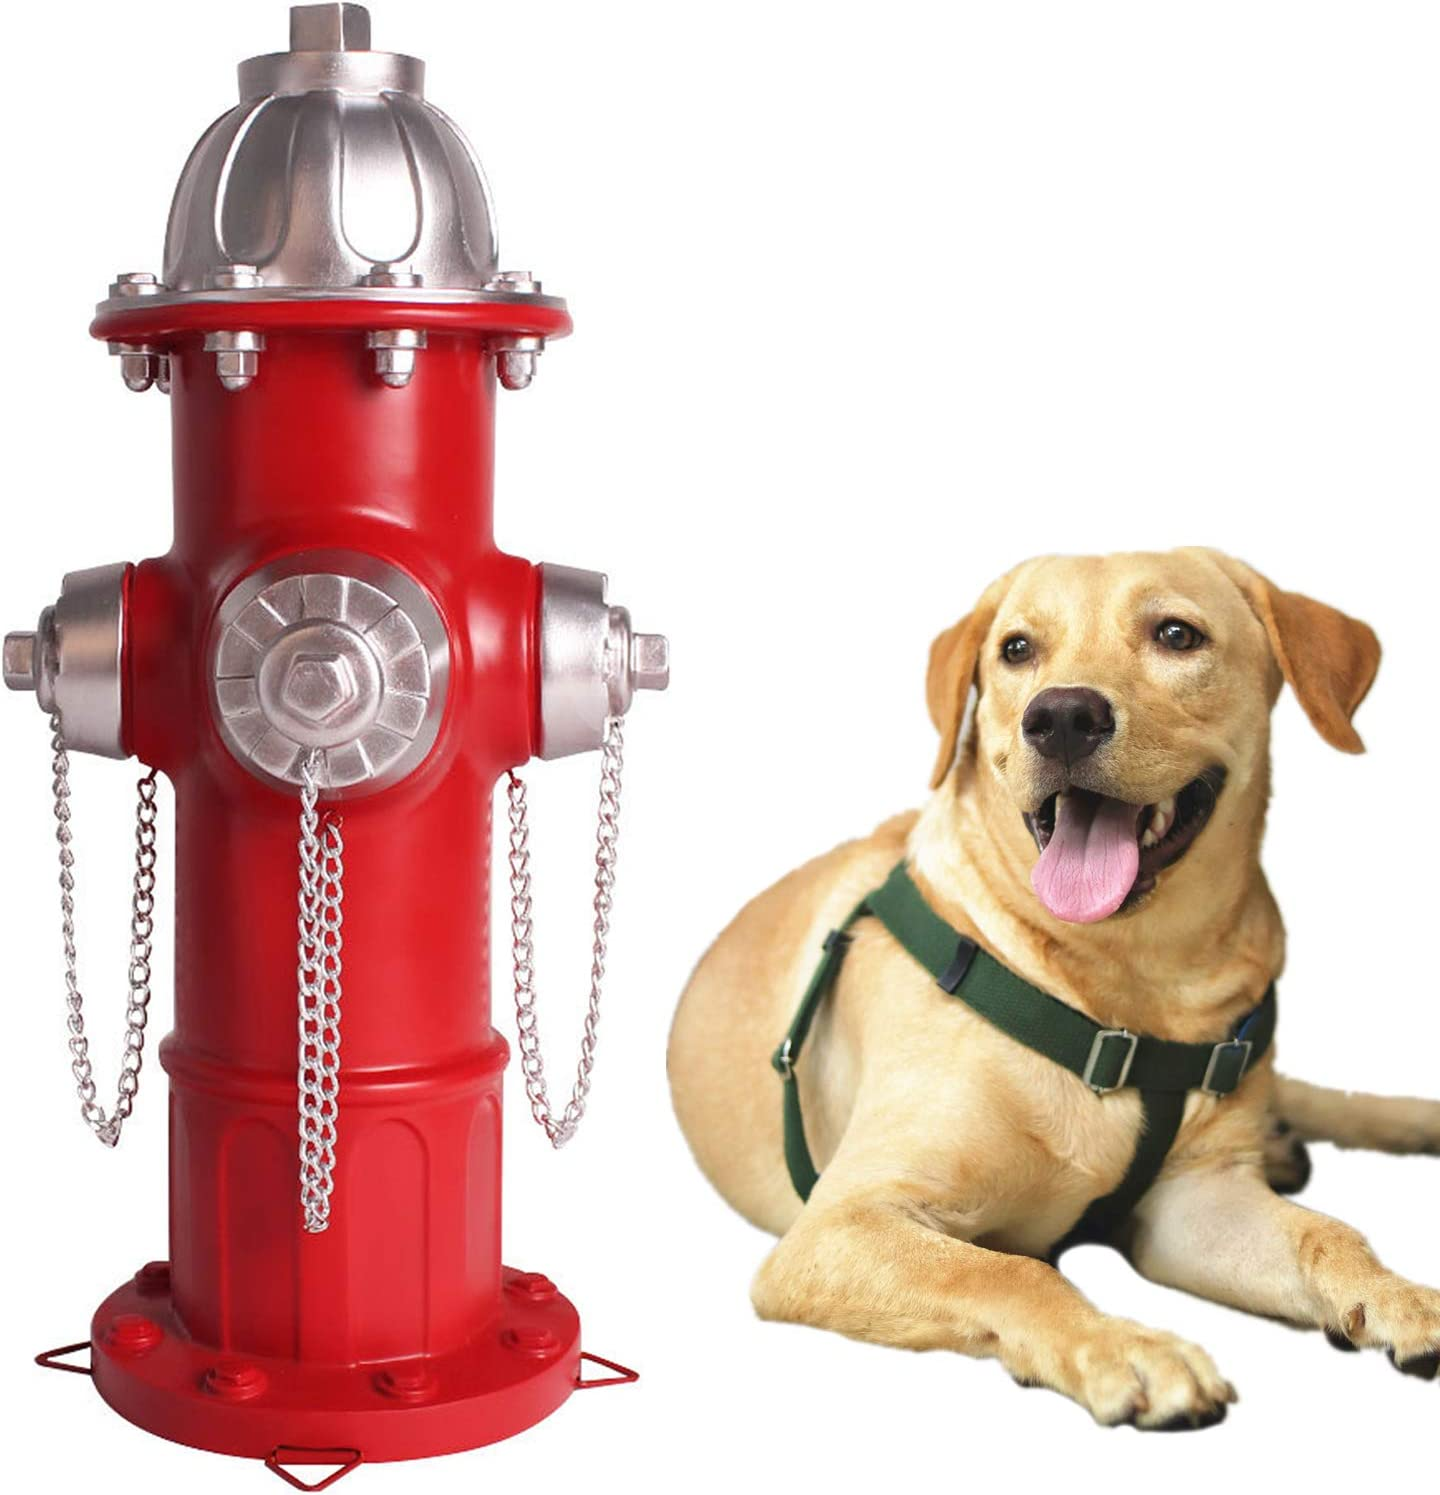 Lovely Ran Fire Hydrant Statue,Perfect Puppy Pee Training Post 14.5 inches Indoor Outdoor Garden Statue Yard Decoration